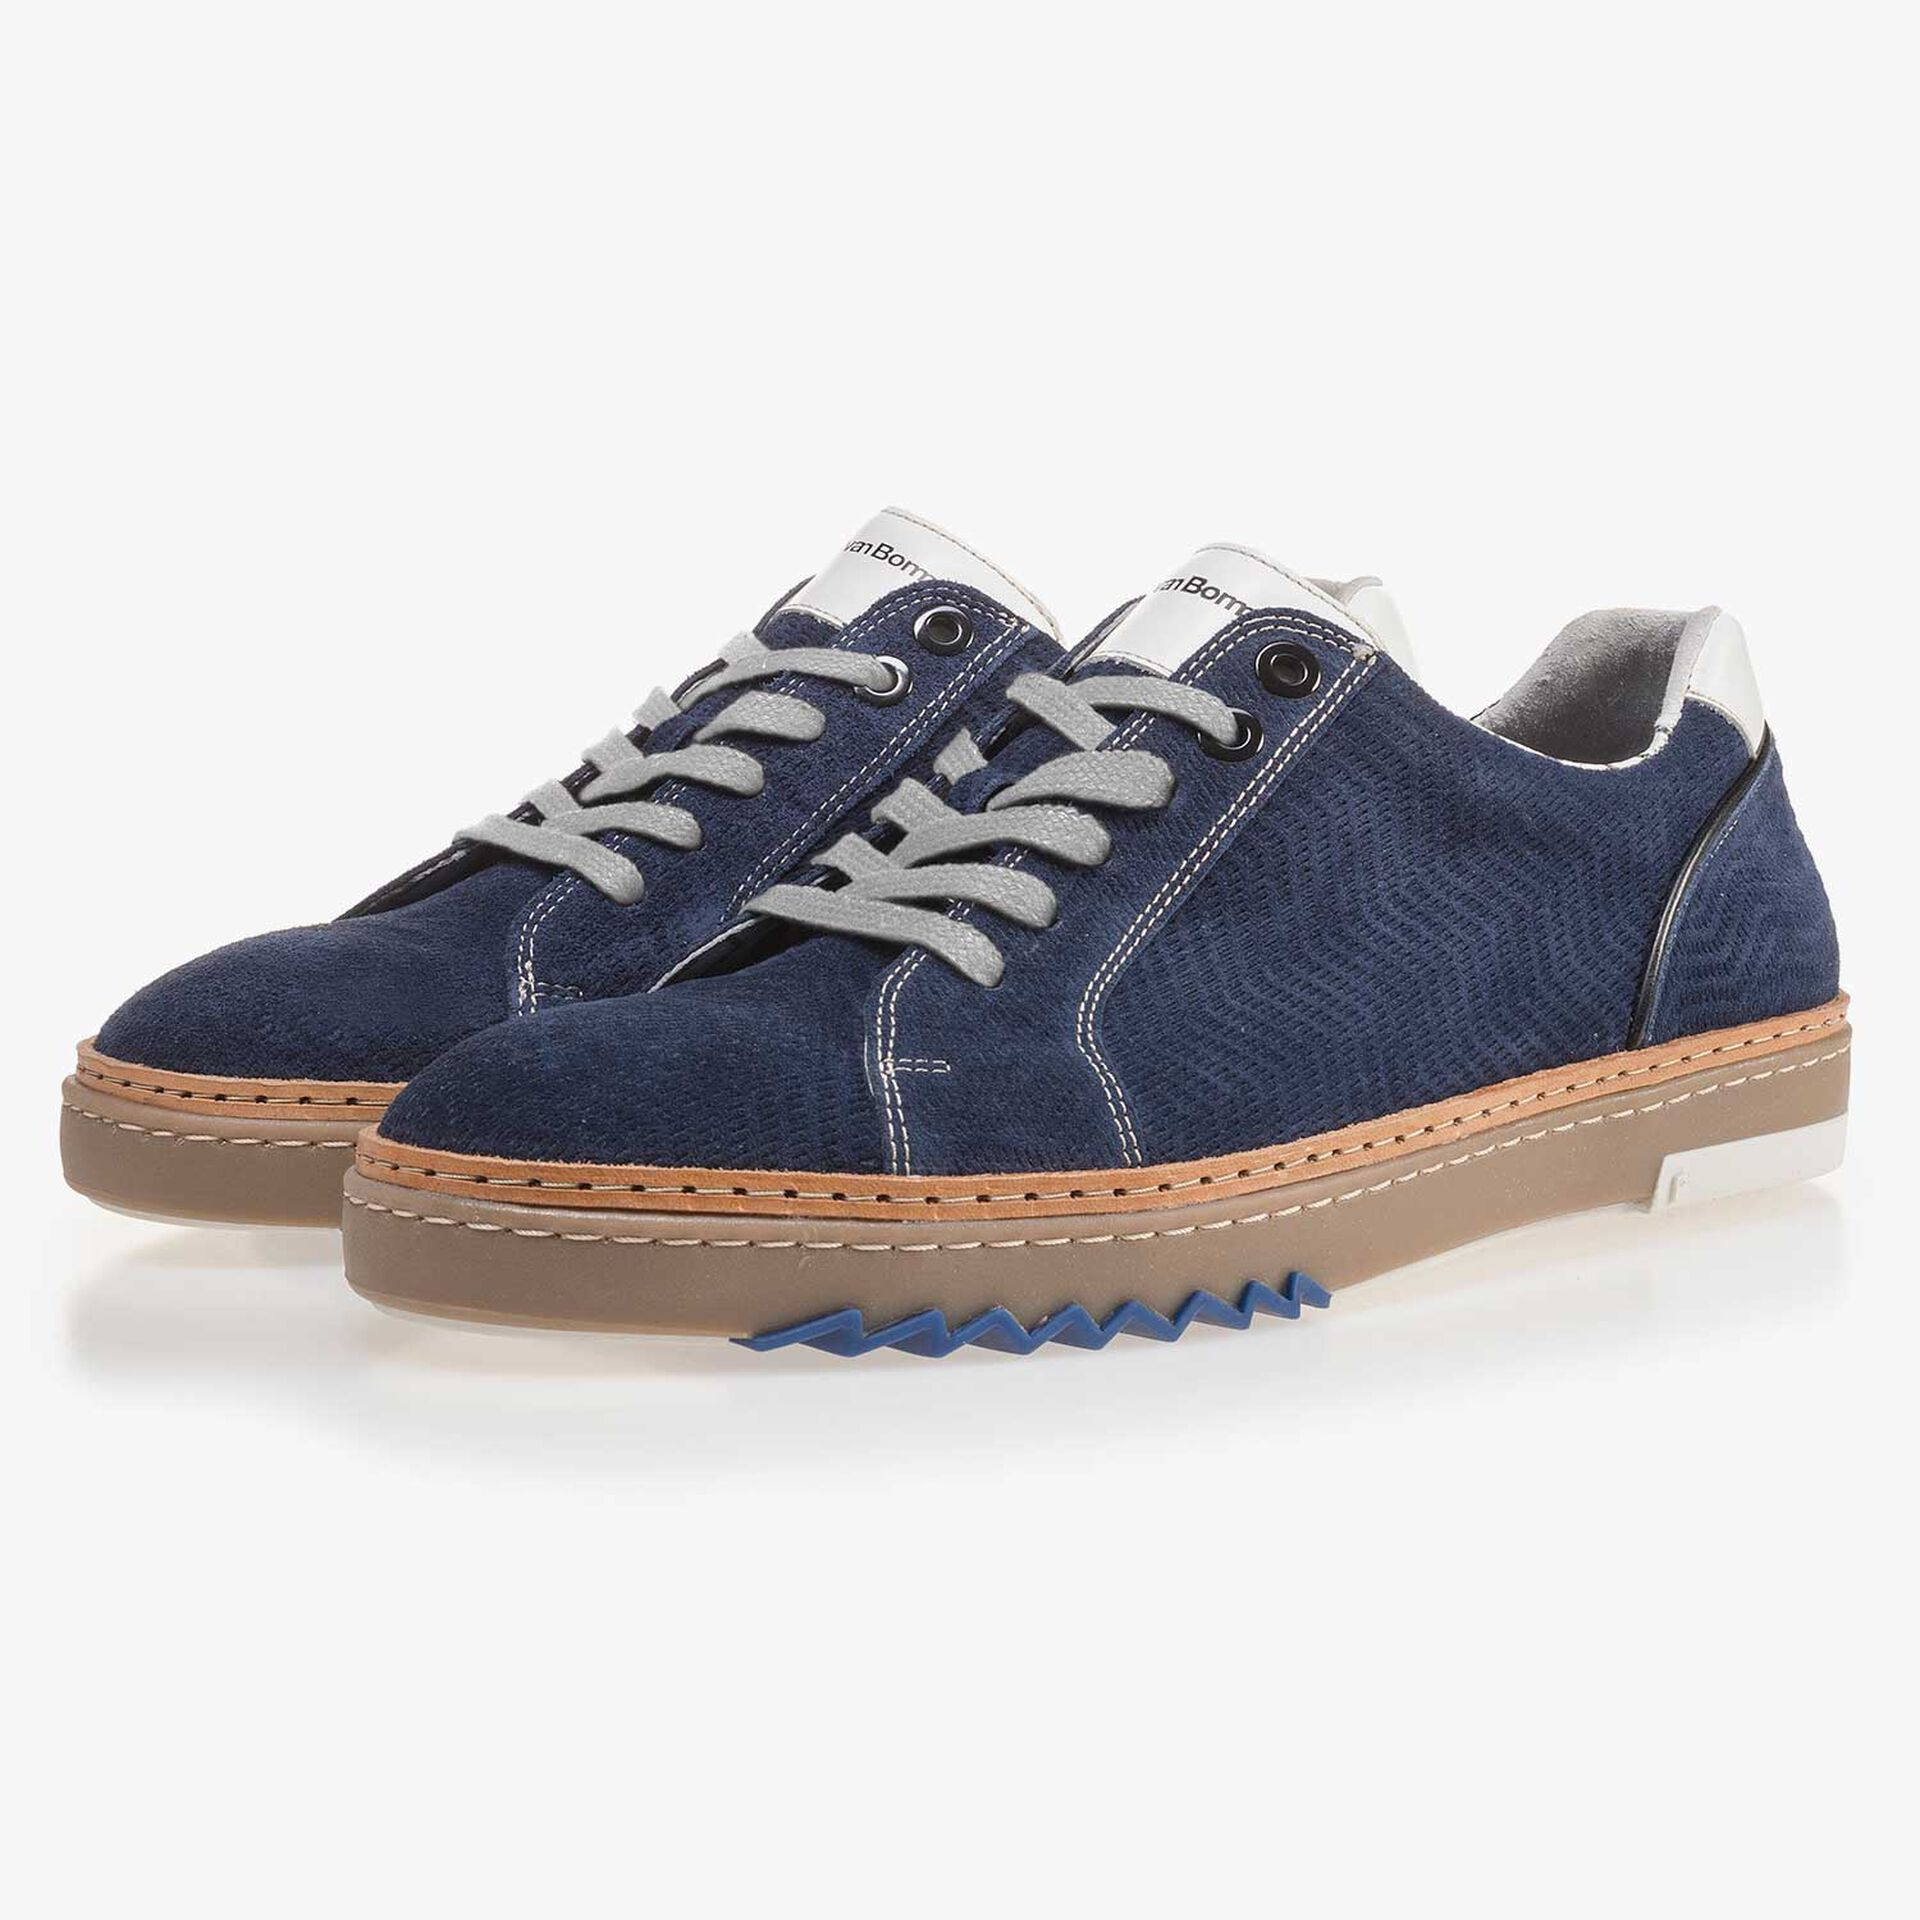 Blue, suede leather sneaker with pattern